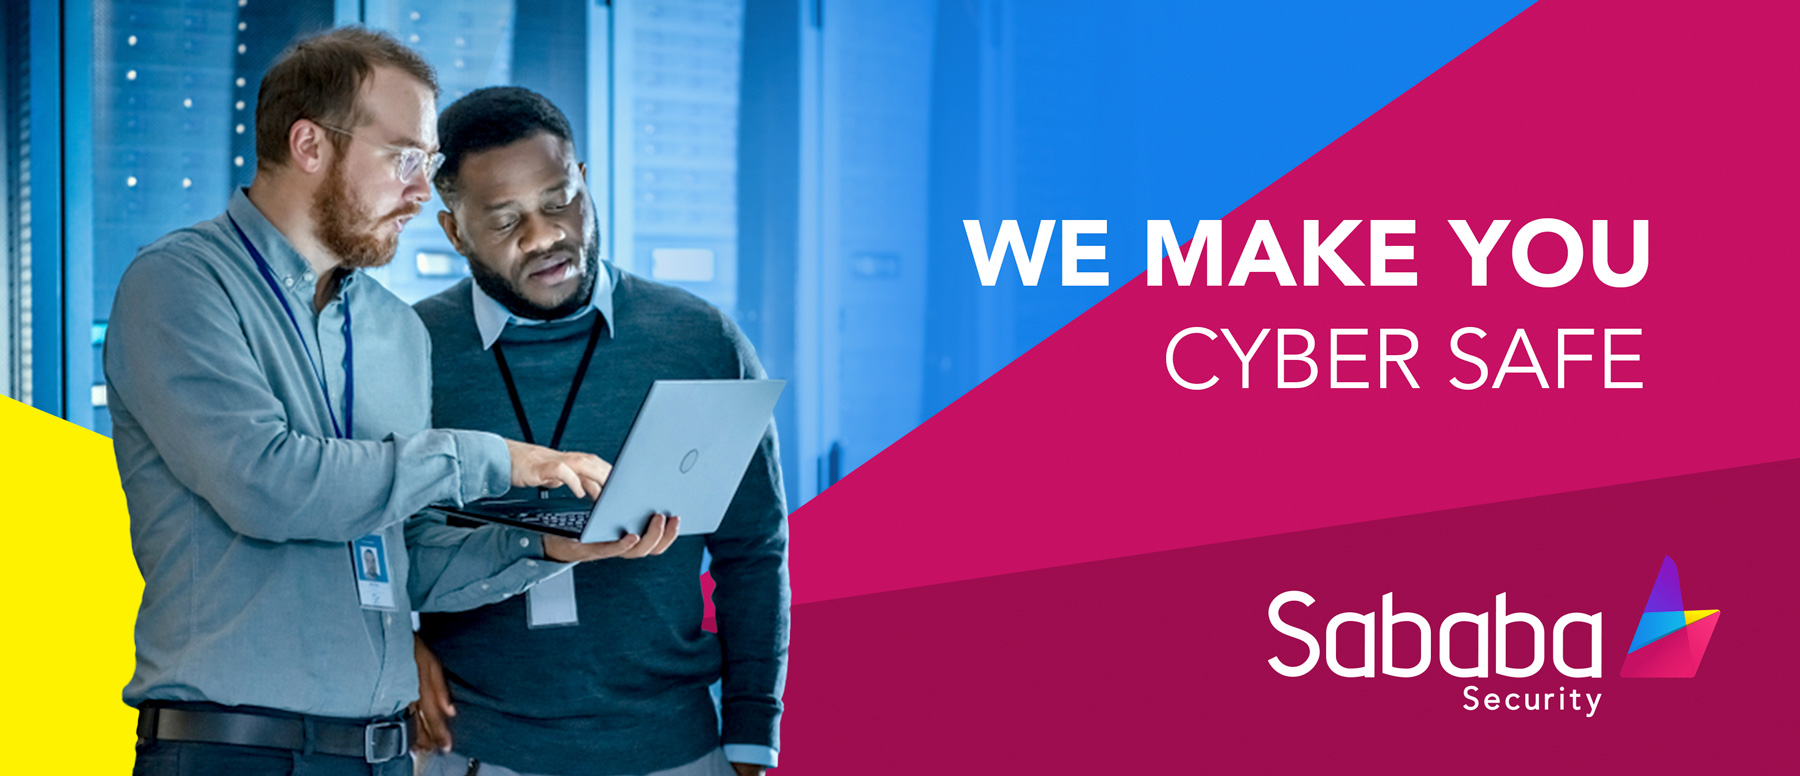 We make you cyber safe